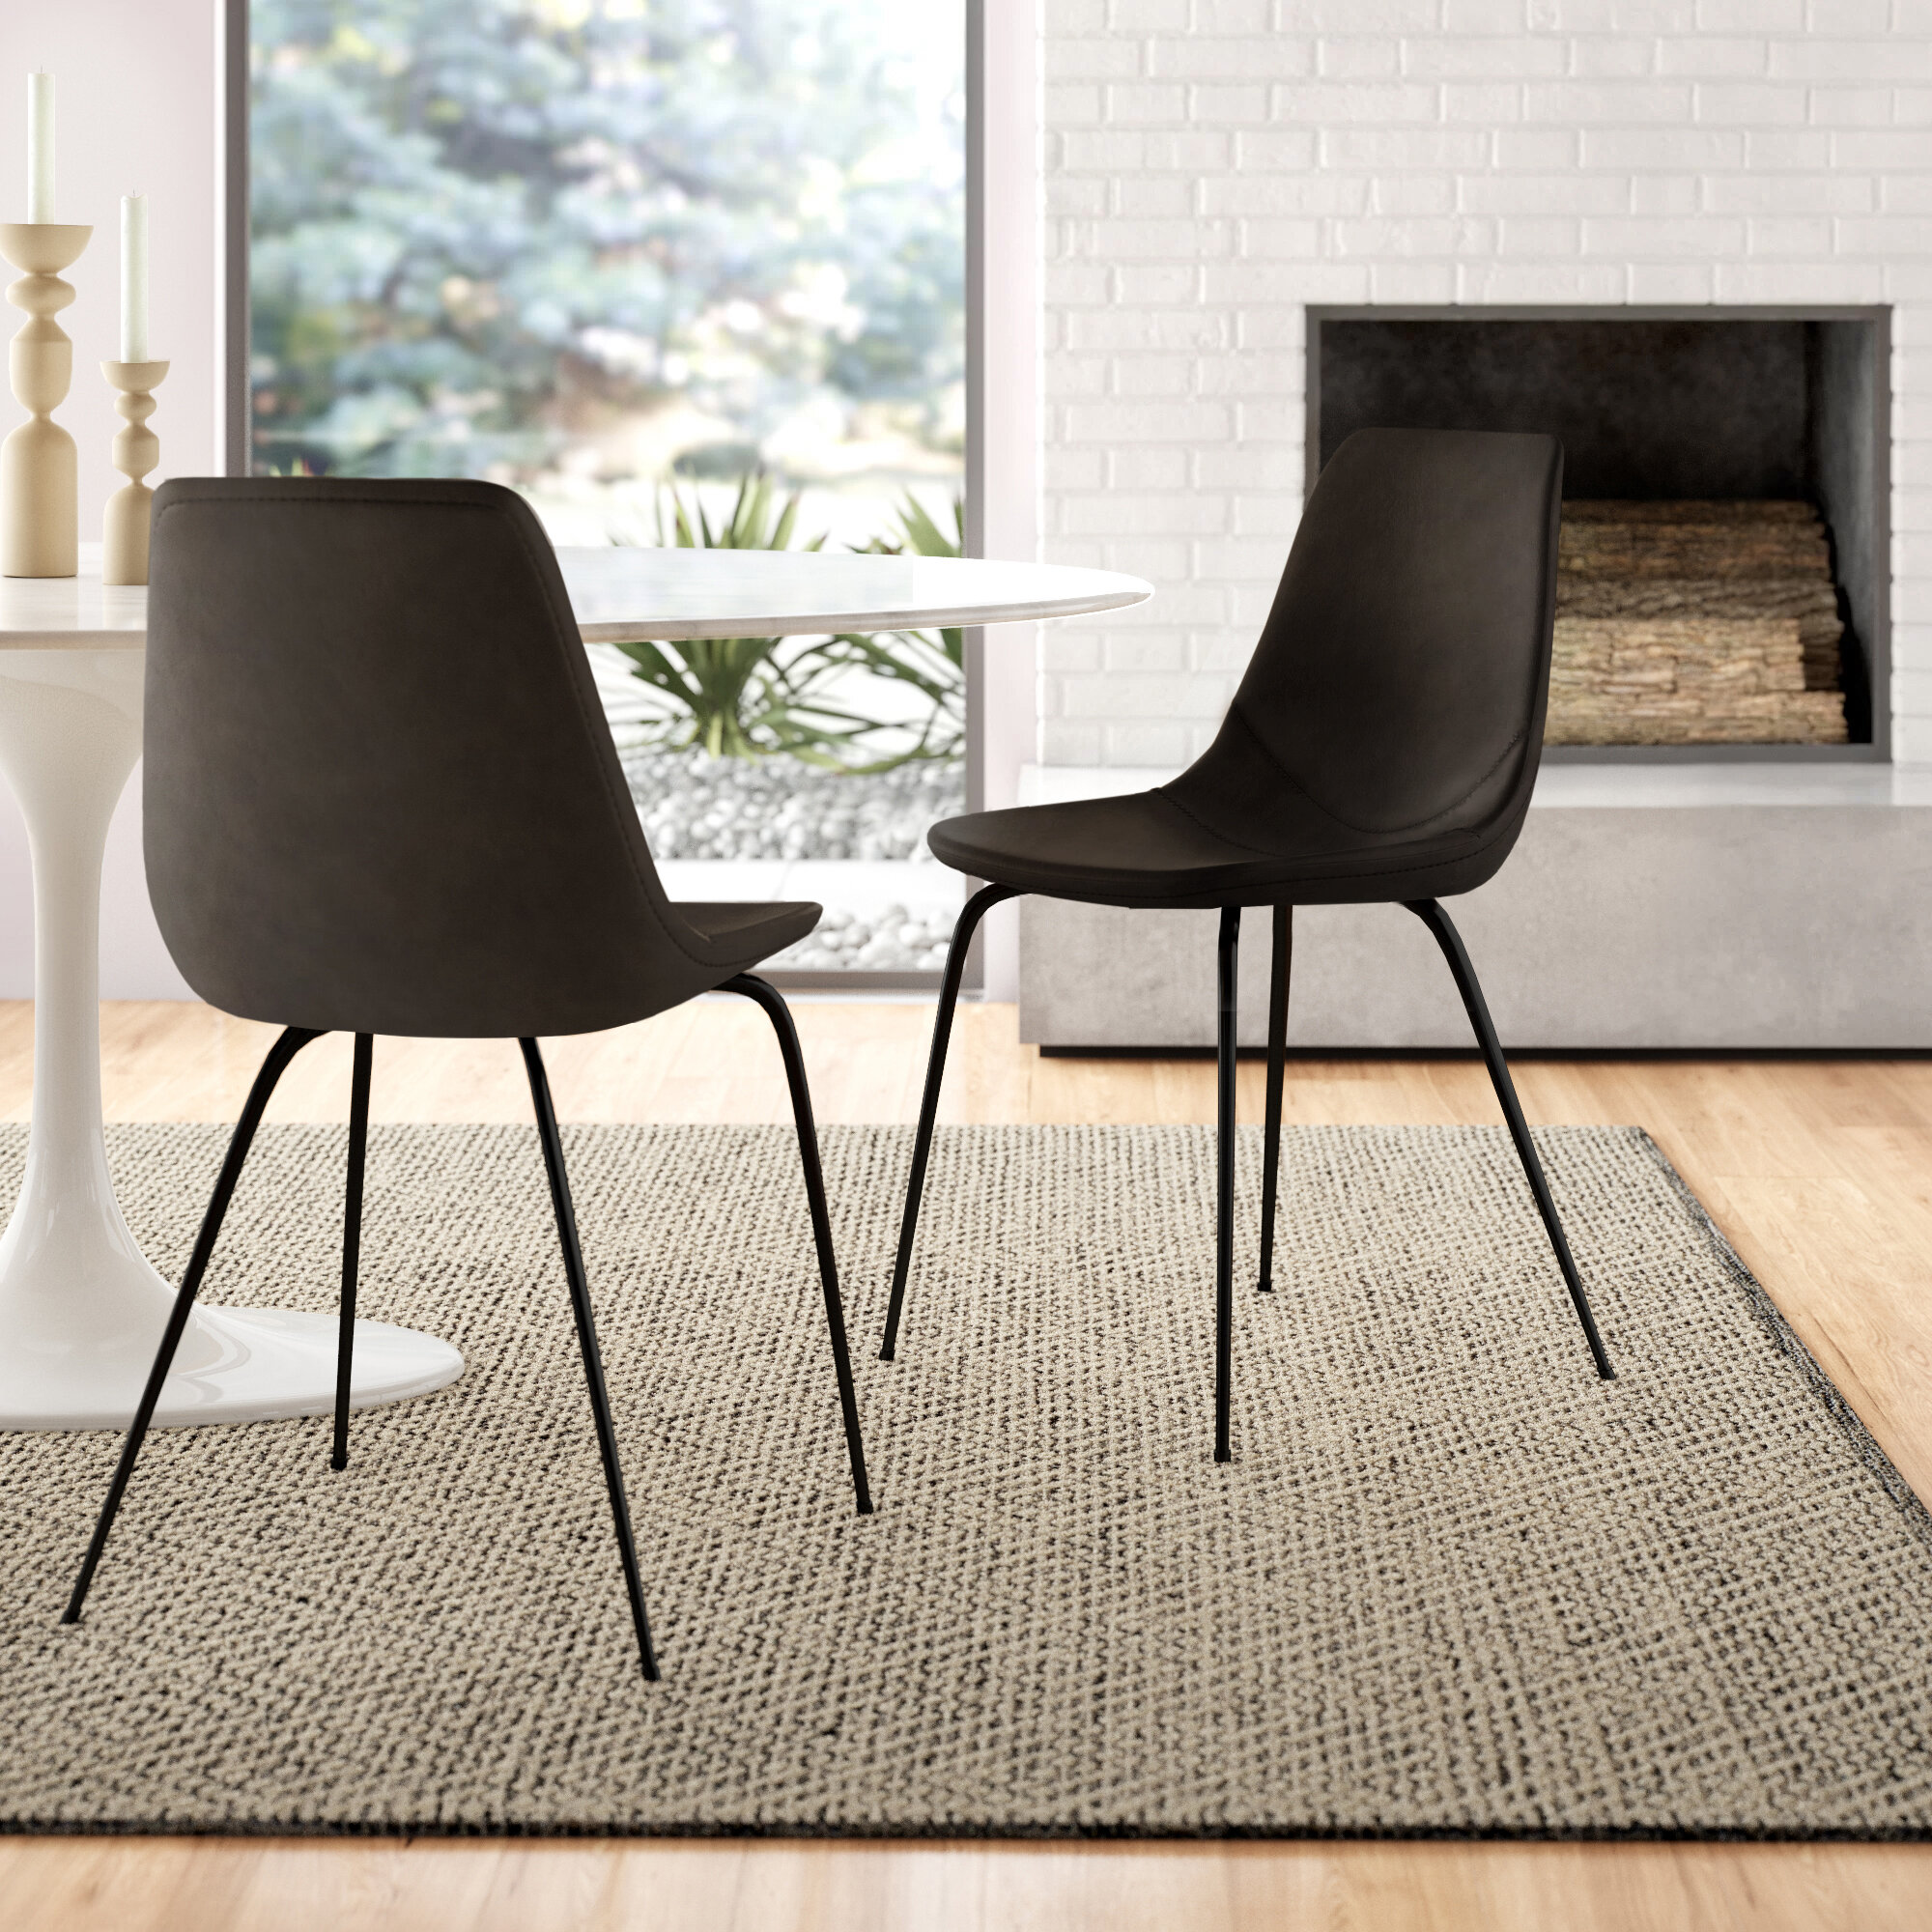 Union Rustic Braxton Upholstered Dining Chair Reviews Wayfair